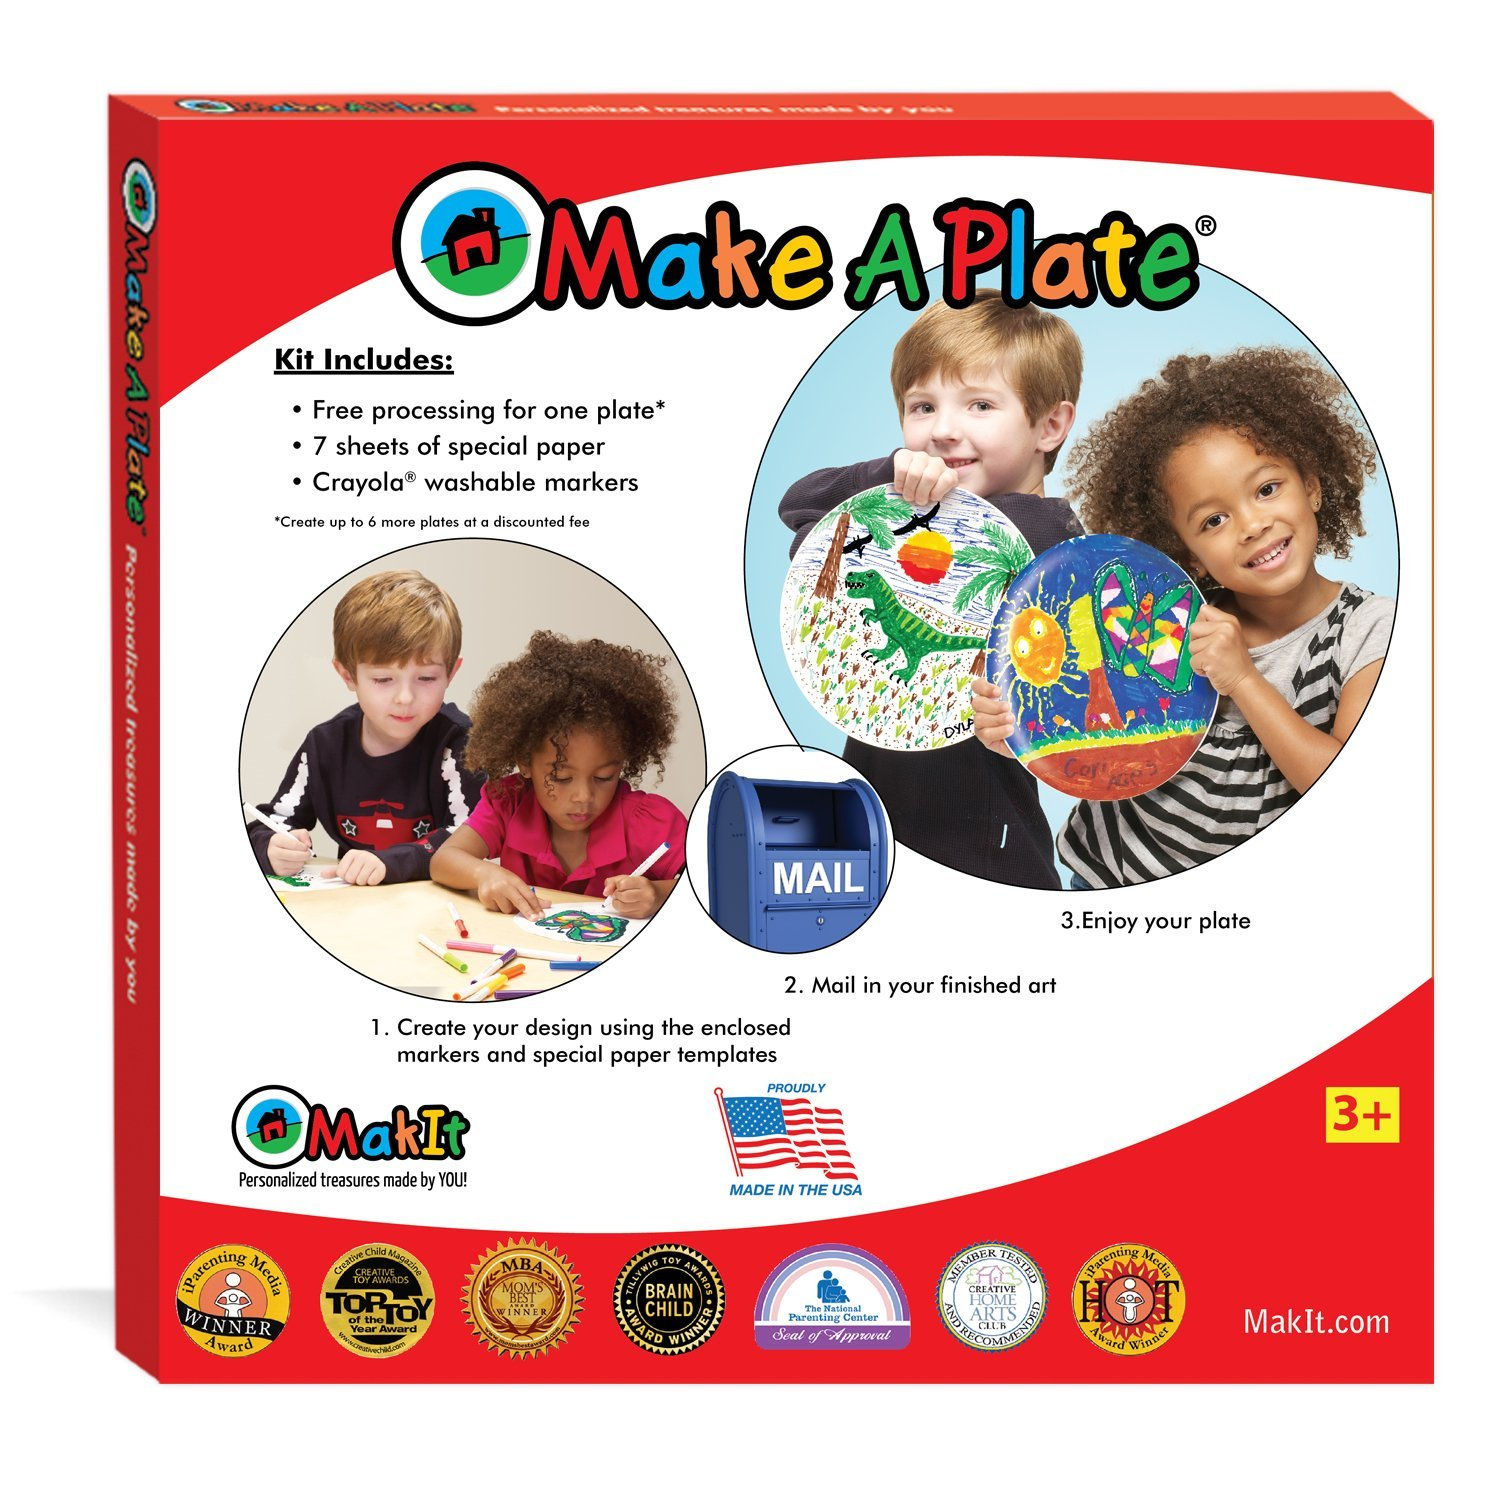 Make Your Own Plate Kit, $10.49